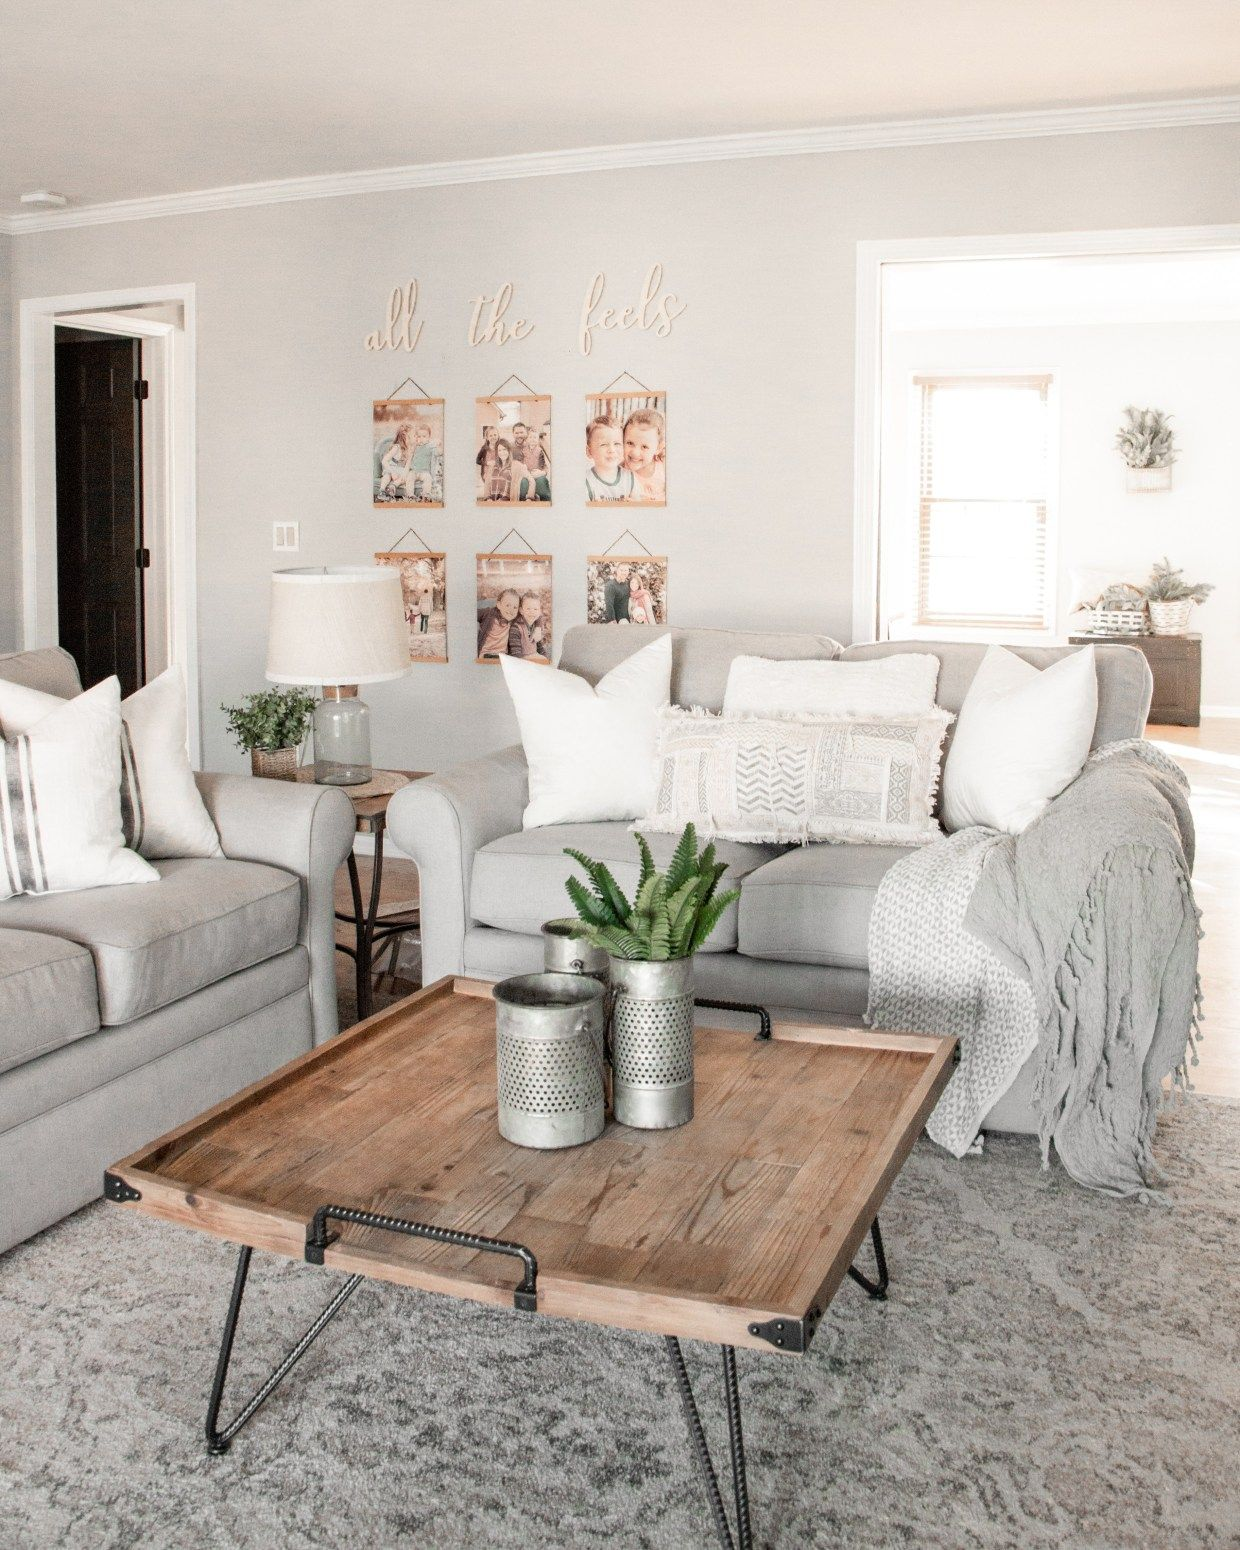 Modern Rustic Living Room Ideas Rustic Home Decor And Design Ideas Modern Rustic Living Room Farmhouse Decor Living Room Farm House Living Room